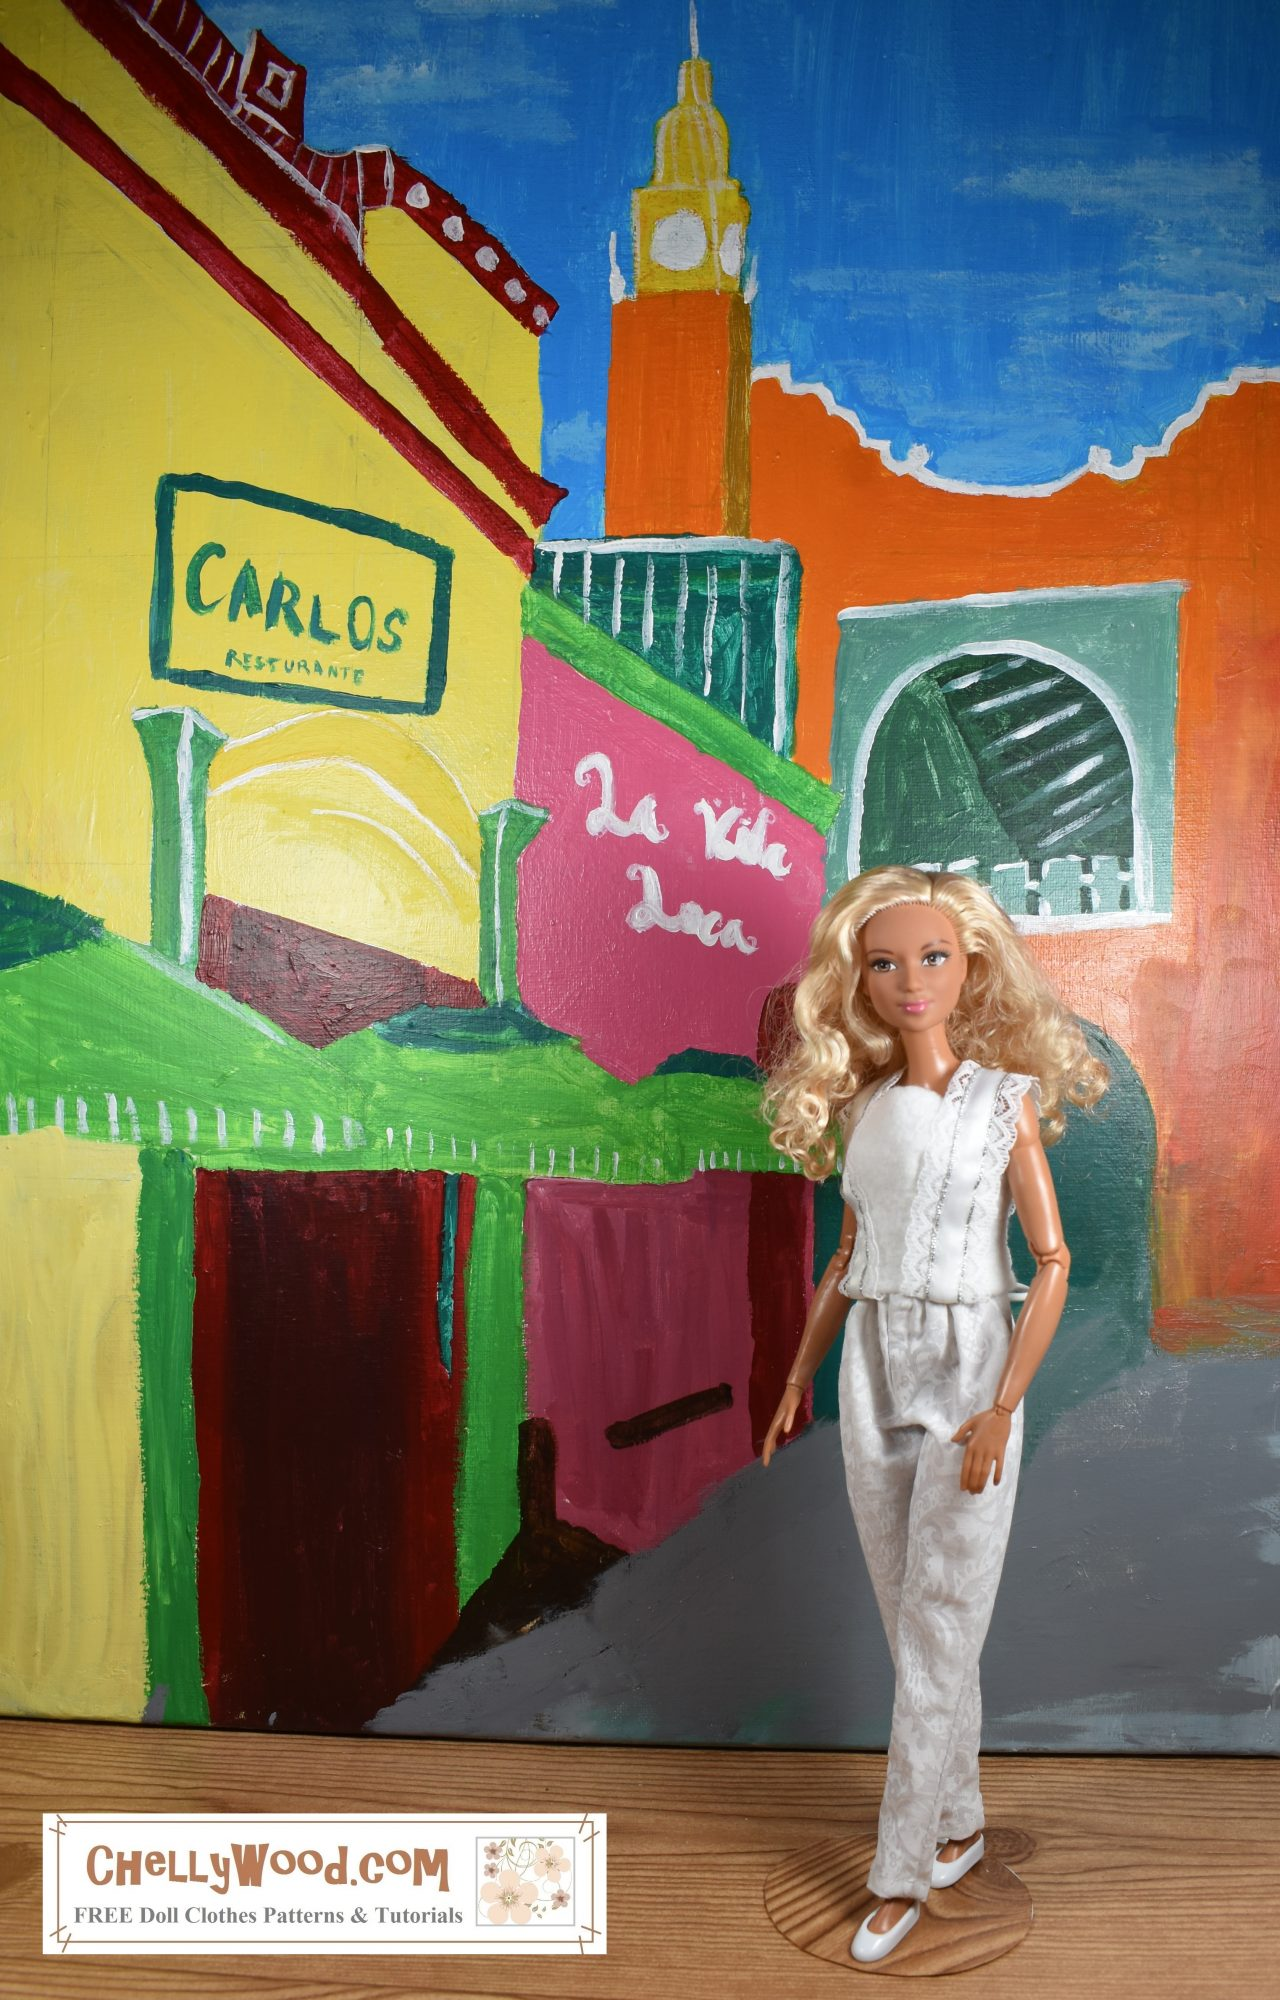 The image shows a Made to Move Barbie wearing a pair of puffy-top pants and a felt summer shirt that has lace straps and lace embellishments down the front (and back) of the shirt). The doll stands in a Caribbean-style painted backdrop.